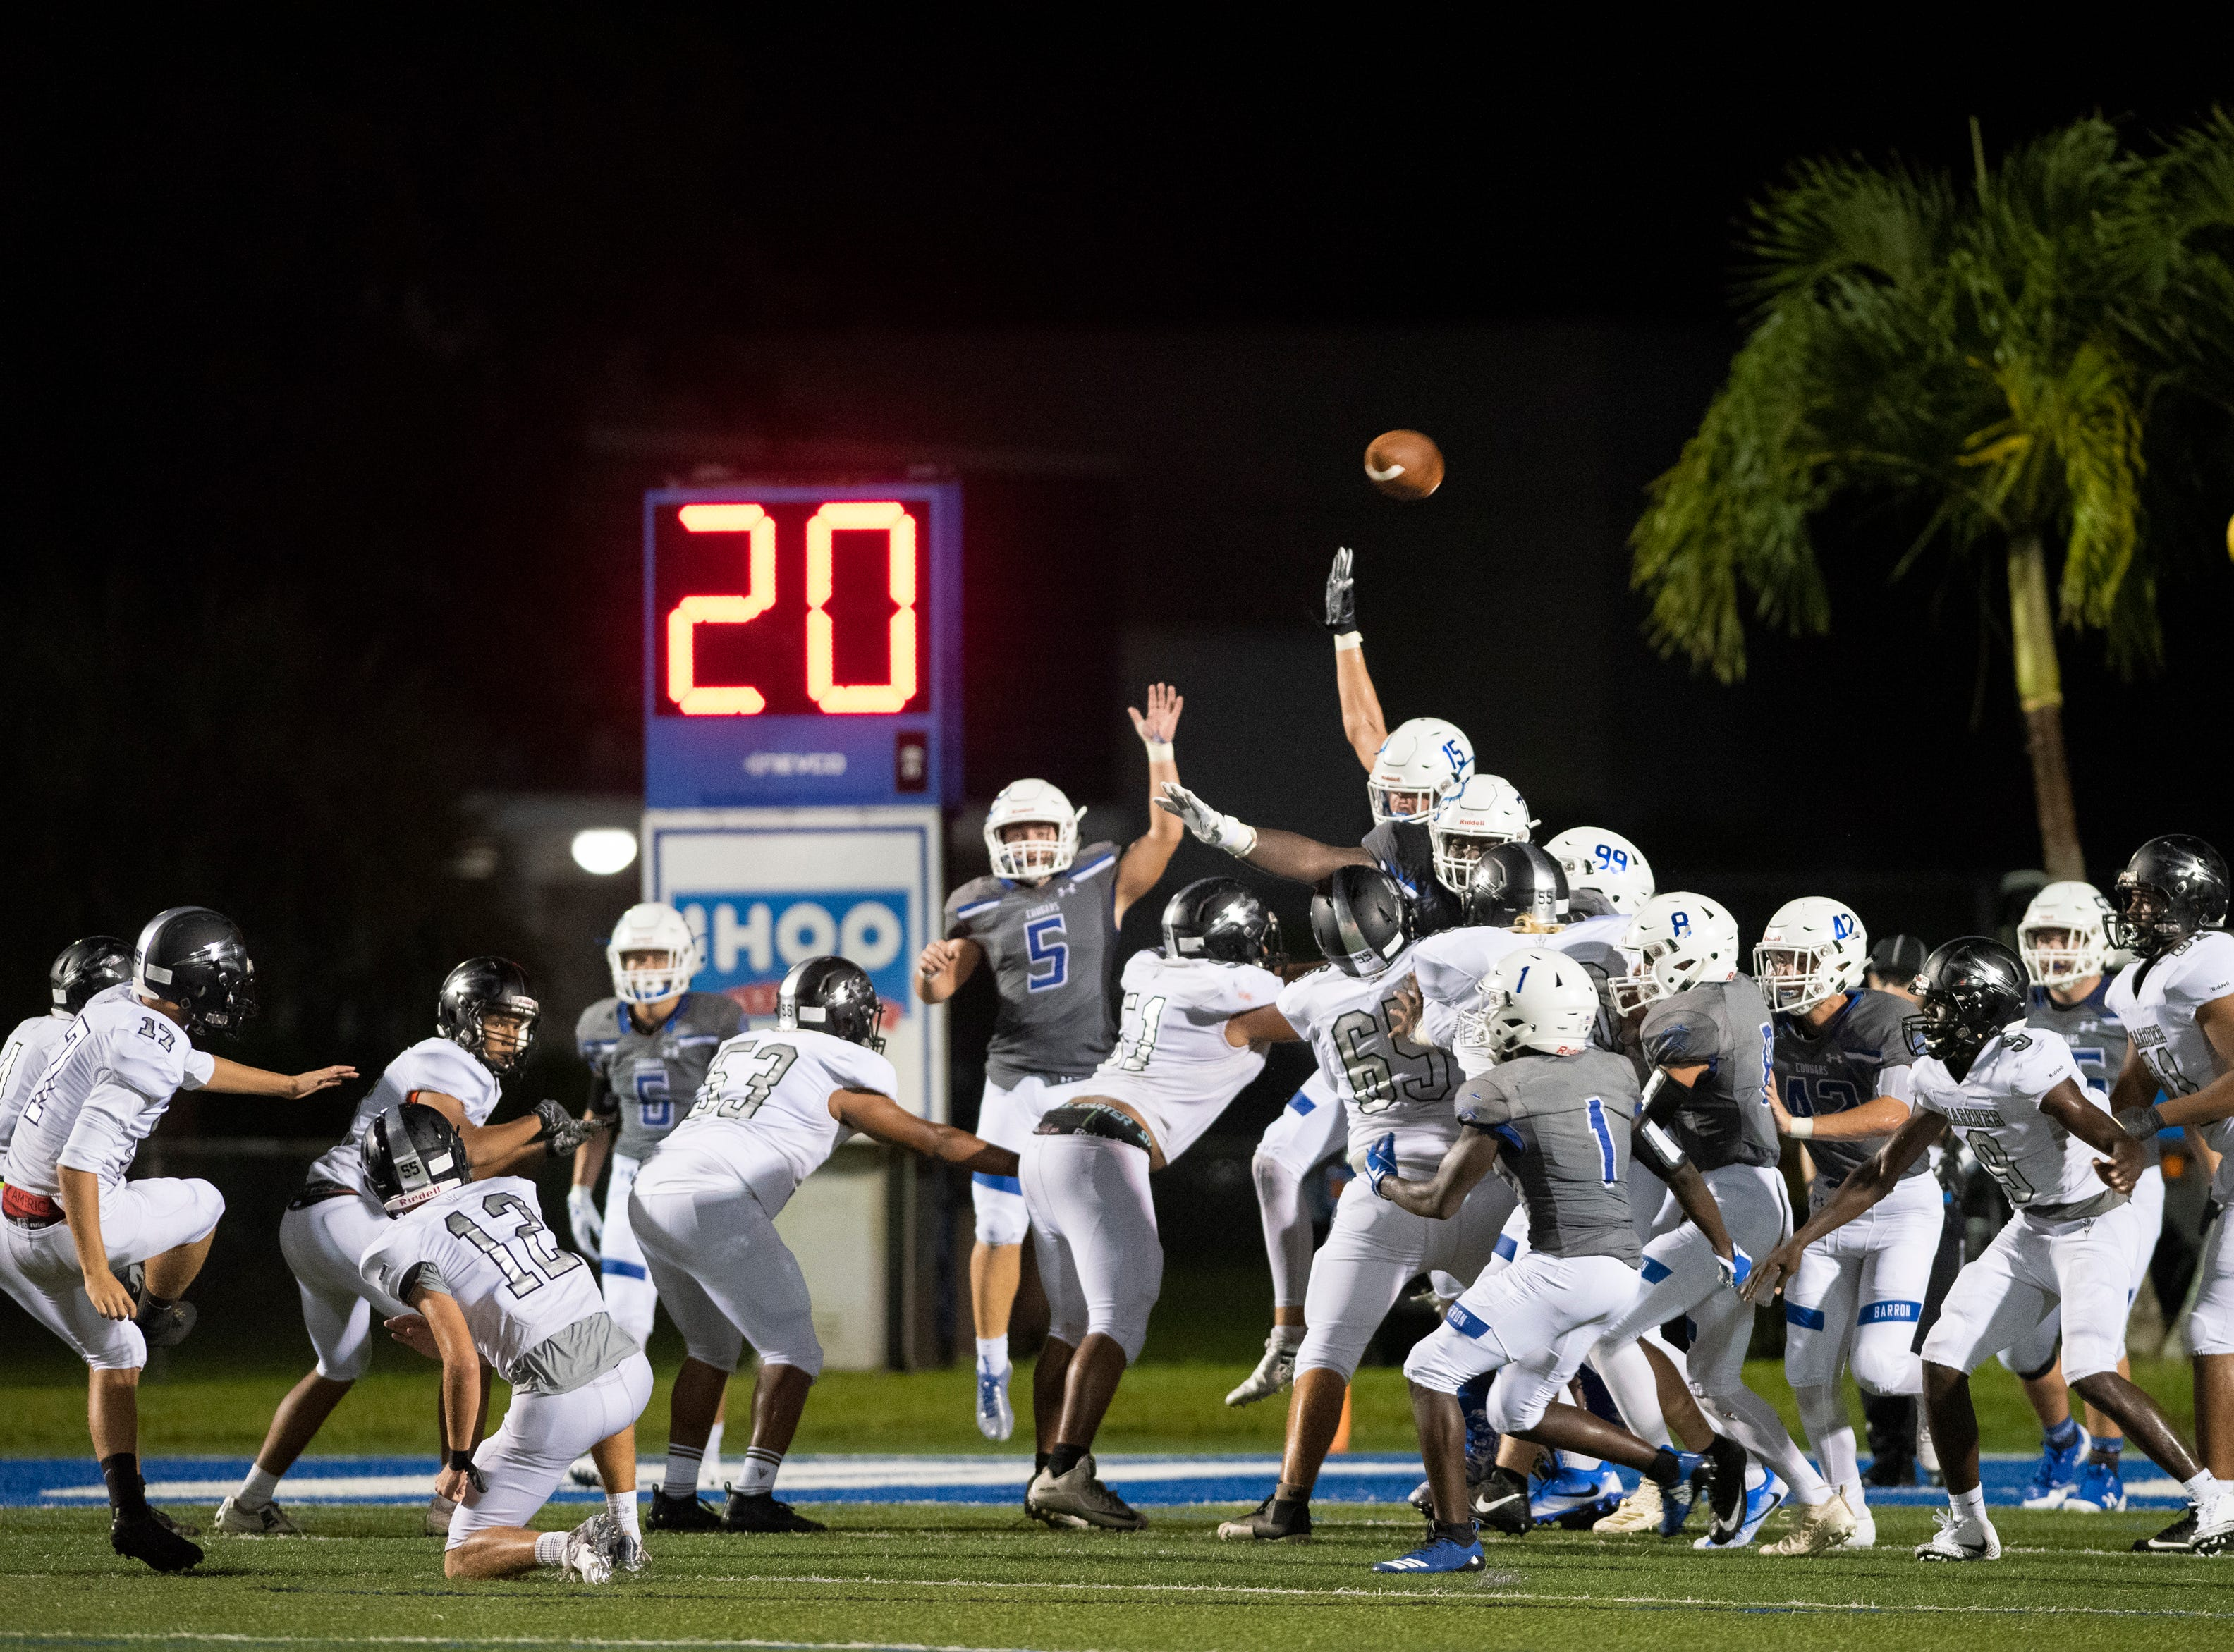 Kaleb Manley of Mariner kicks an extra point as Barron Collier tries to block it during the game at Barron Collier High Friday night, September 21, 2018.